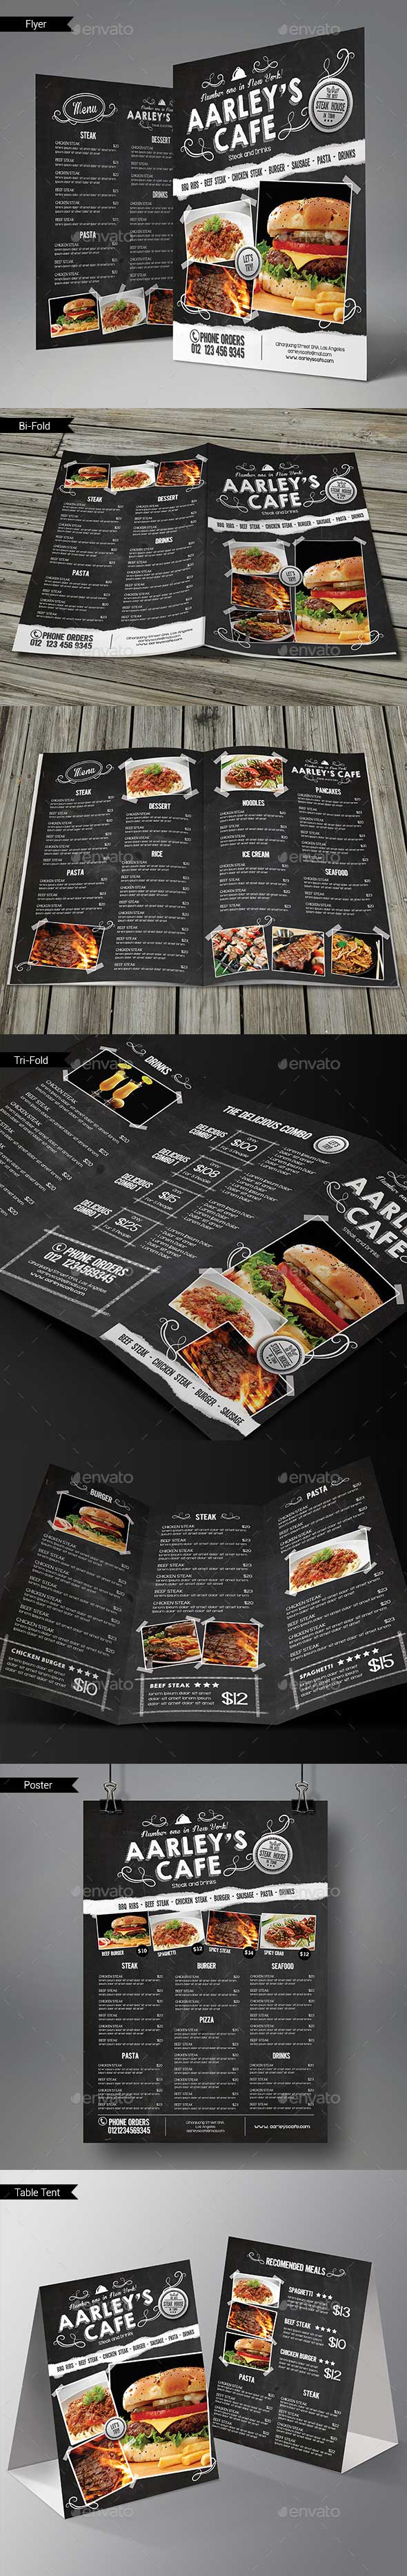 psd-blackboard-food-menu-bundle